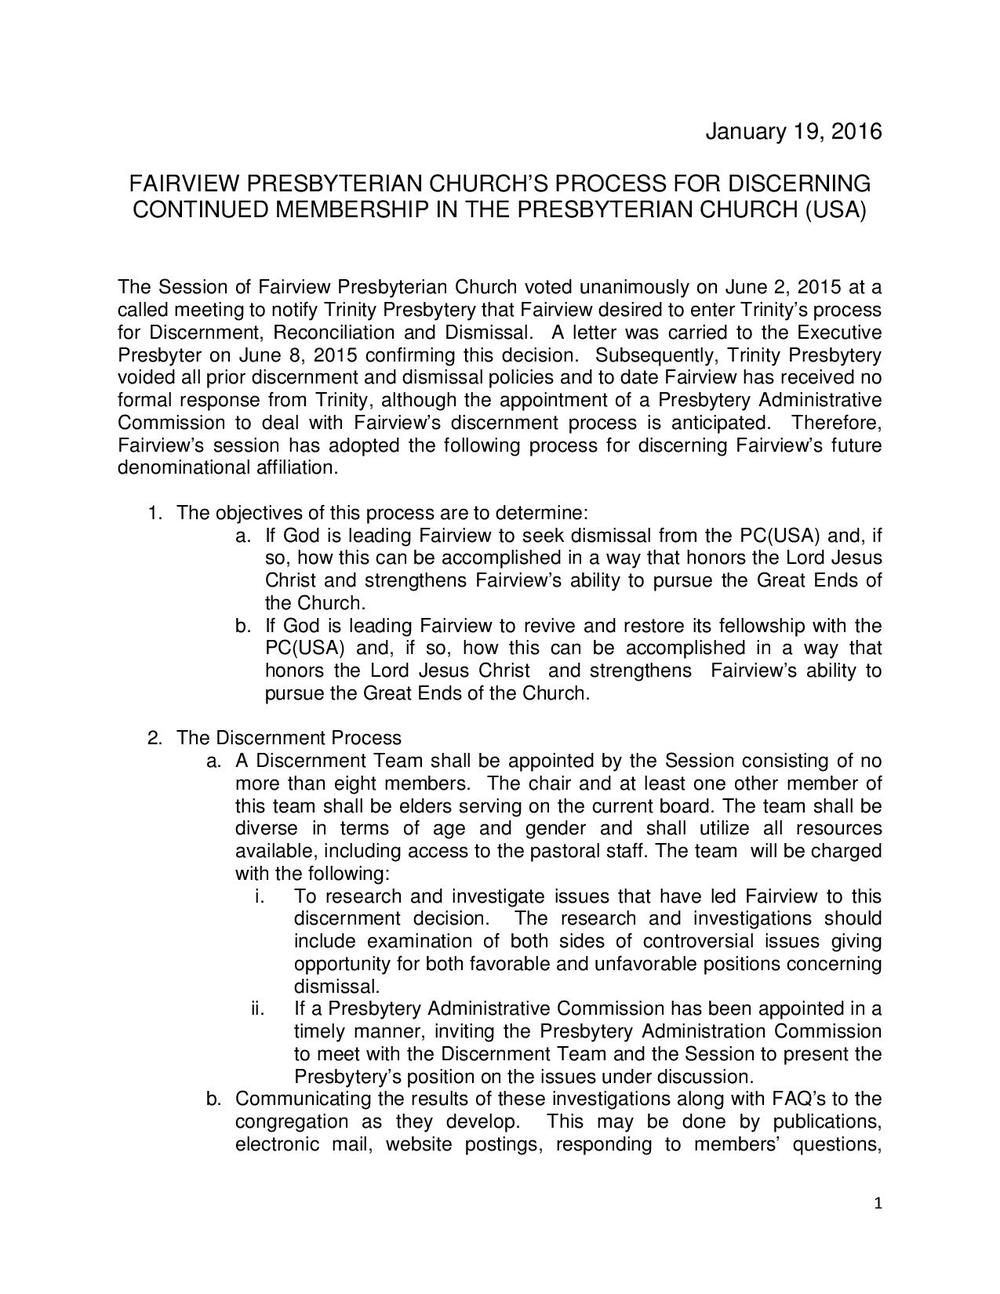 FAIRVIEW Discernment Process - Final-page-001.jpg